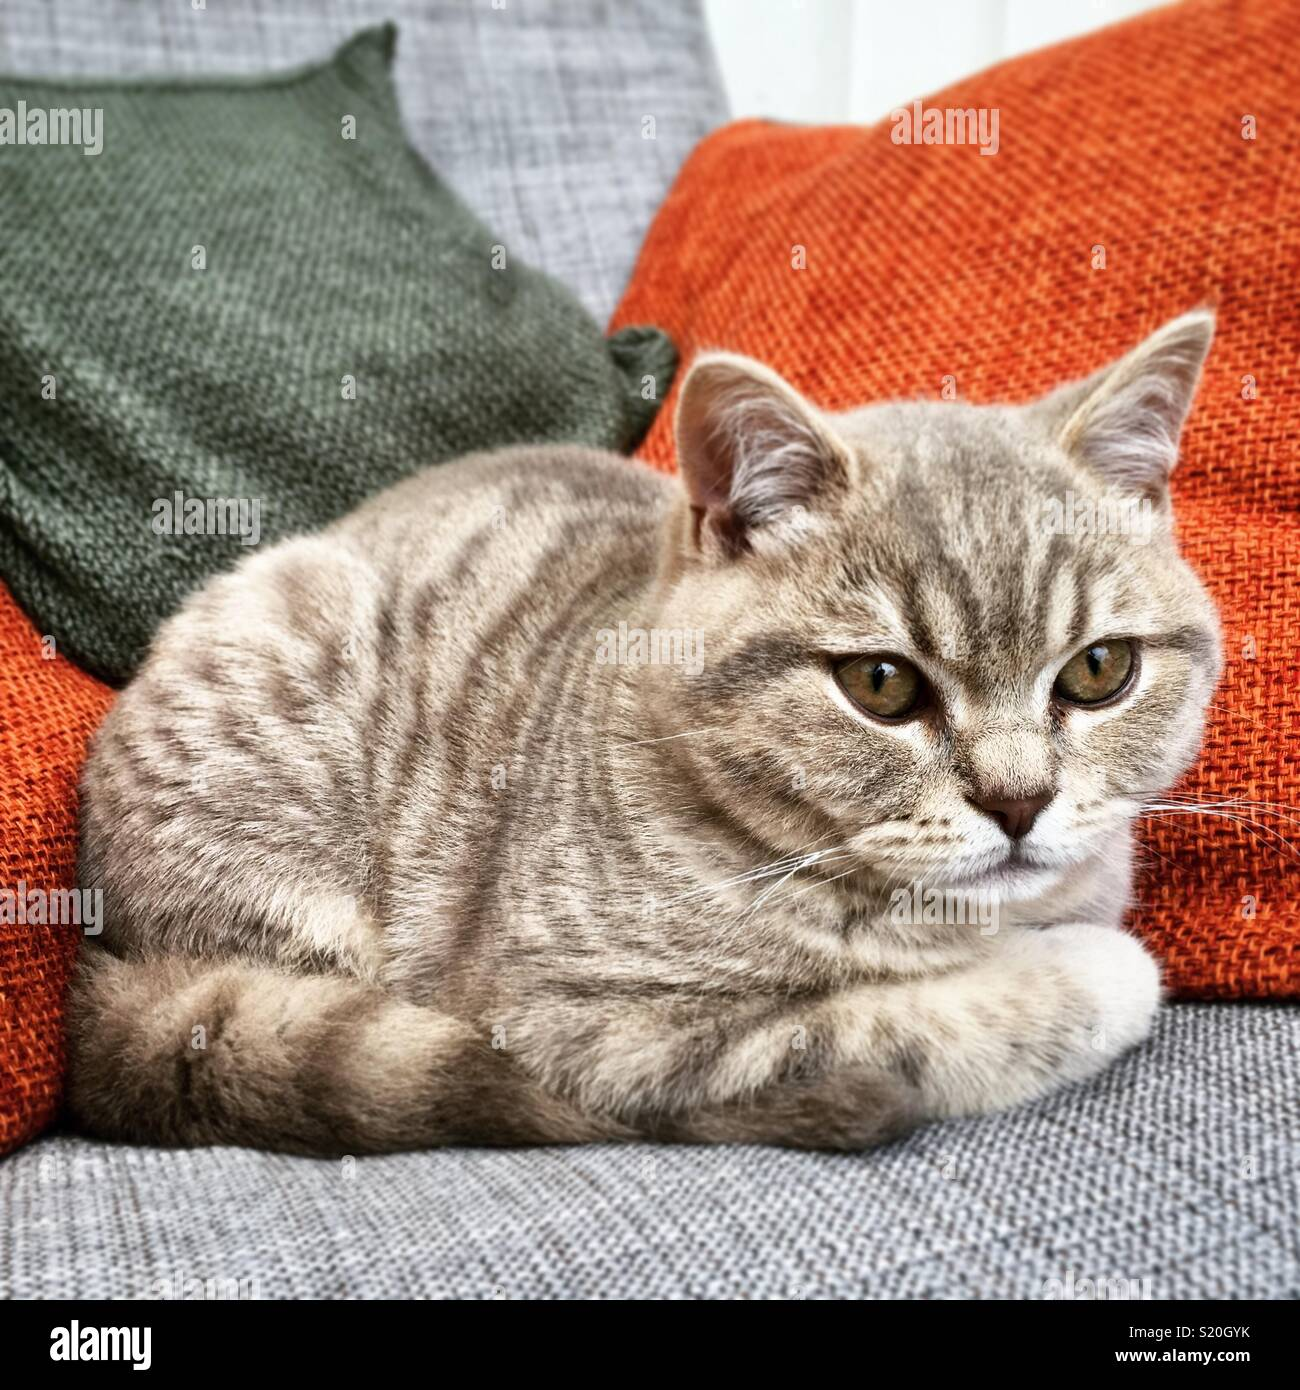 Lilac British Shorthair Cat High Resolution Stock Photography And Images Alamy